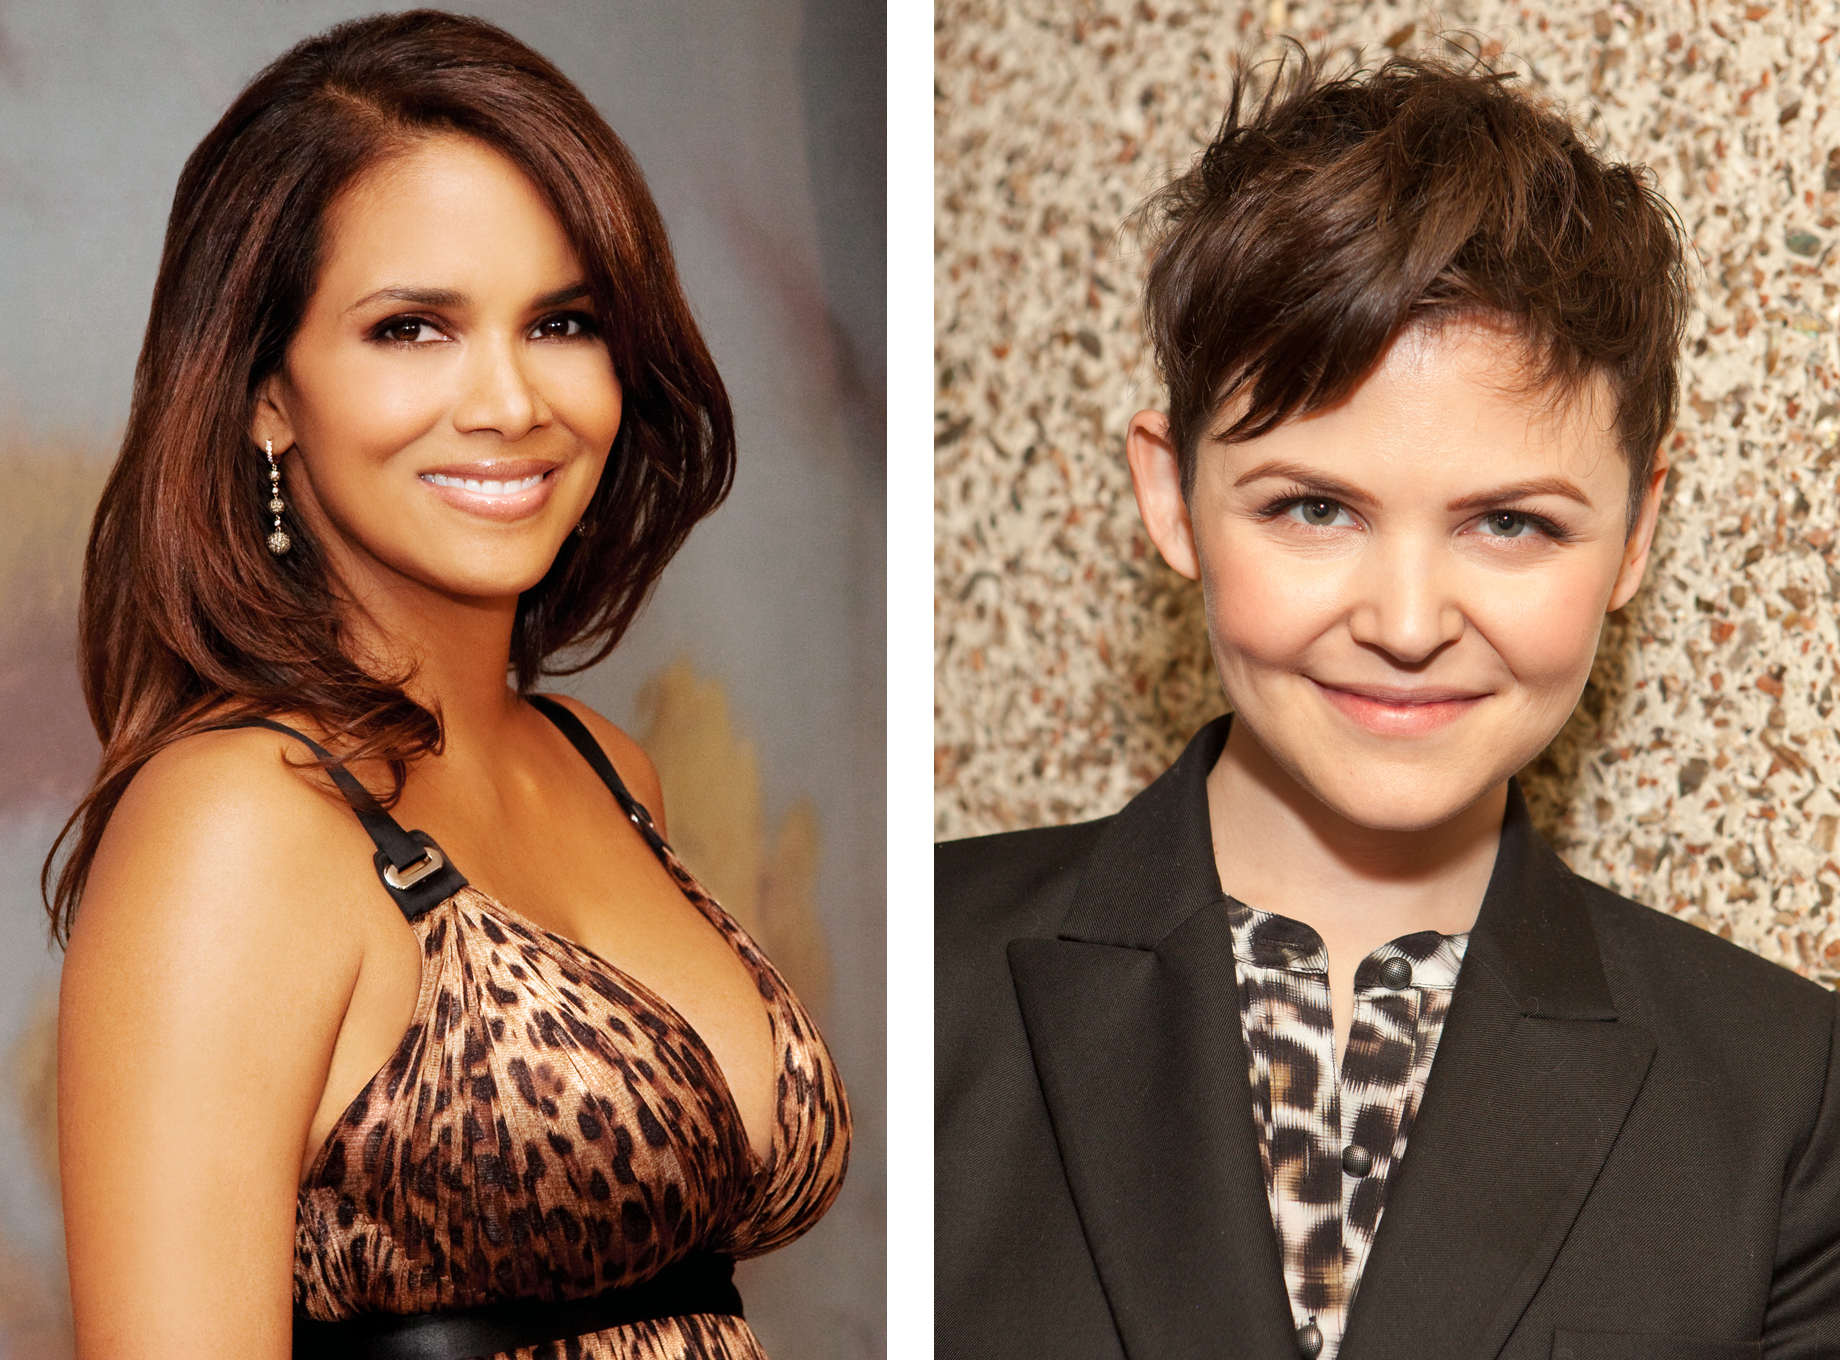 Halle Berry and Ginnifer Goodwin